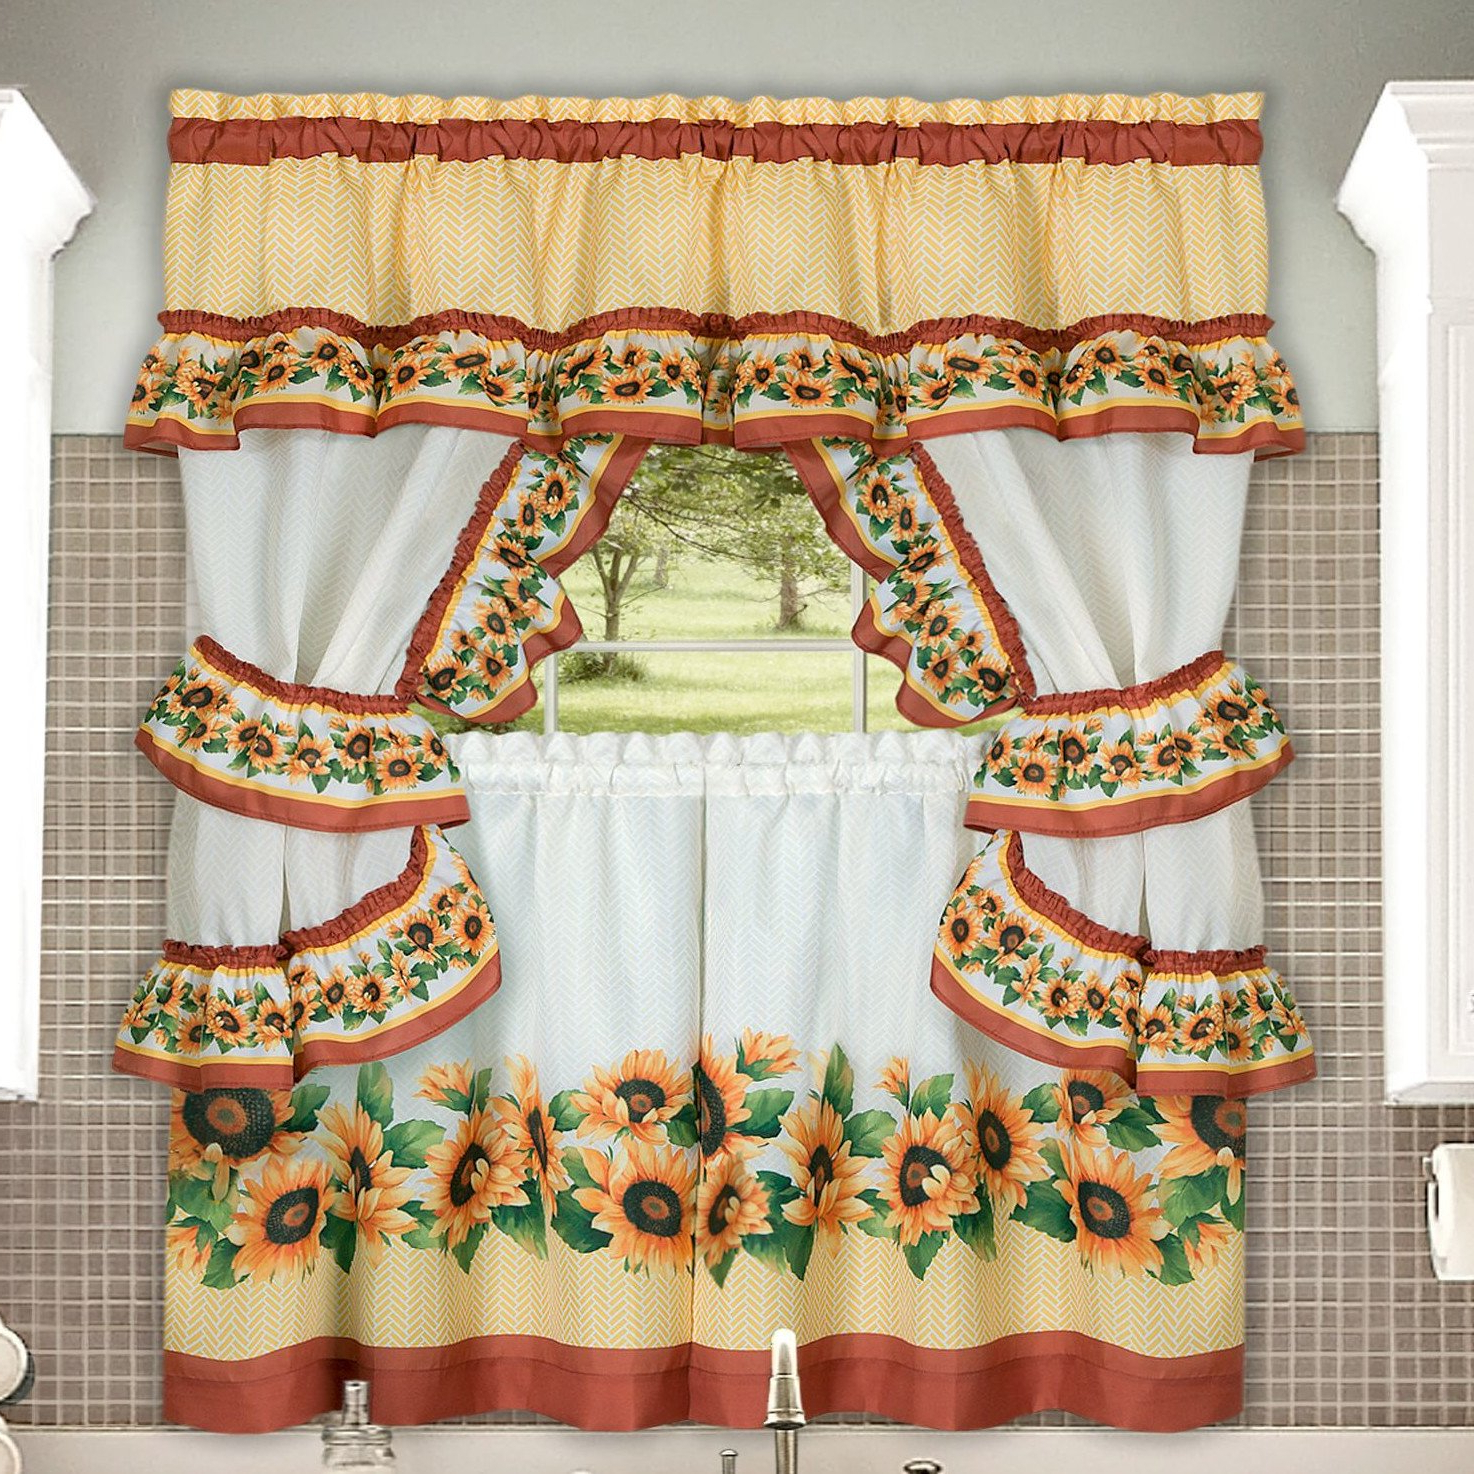 2021 Sunflower Cottage Kitchen Curtain Tier And Valance Sets Inside Amazon: Chevron Sunflower Complete Kitchen Curtain Tier (View 4 of 20)